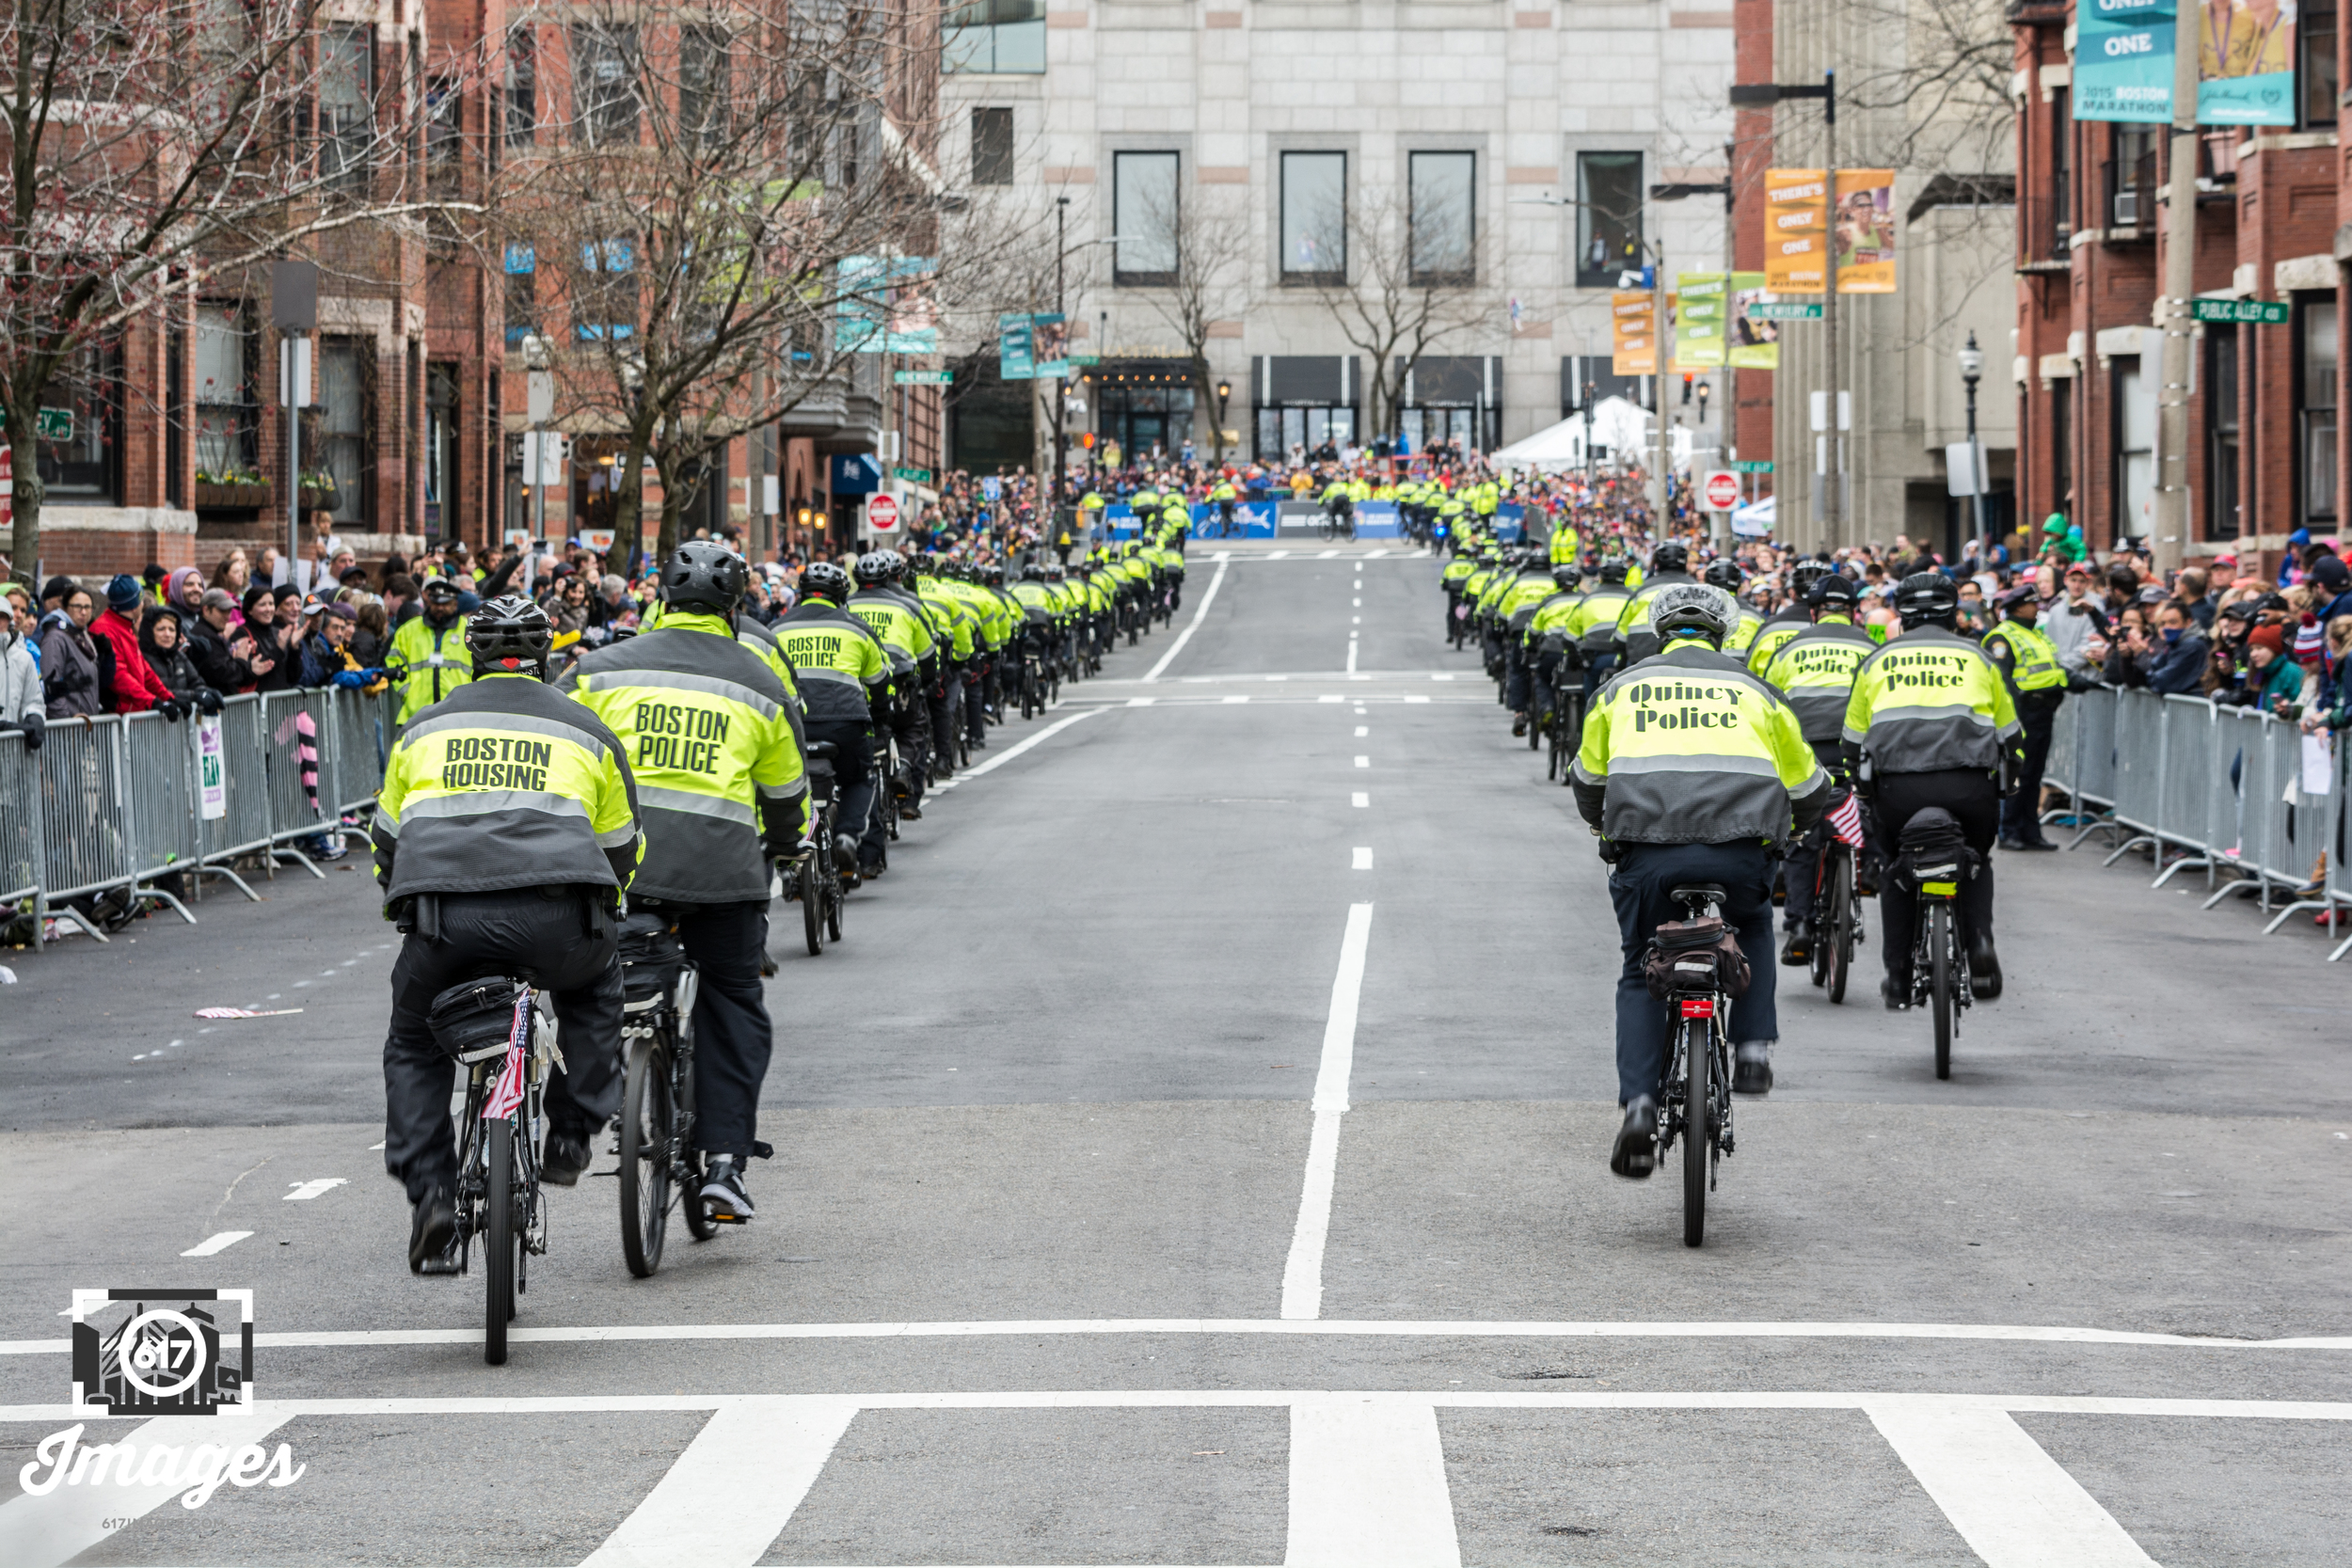 The Boston Police Bike Brigade keeping runners, spectators and the city safe.